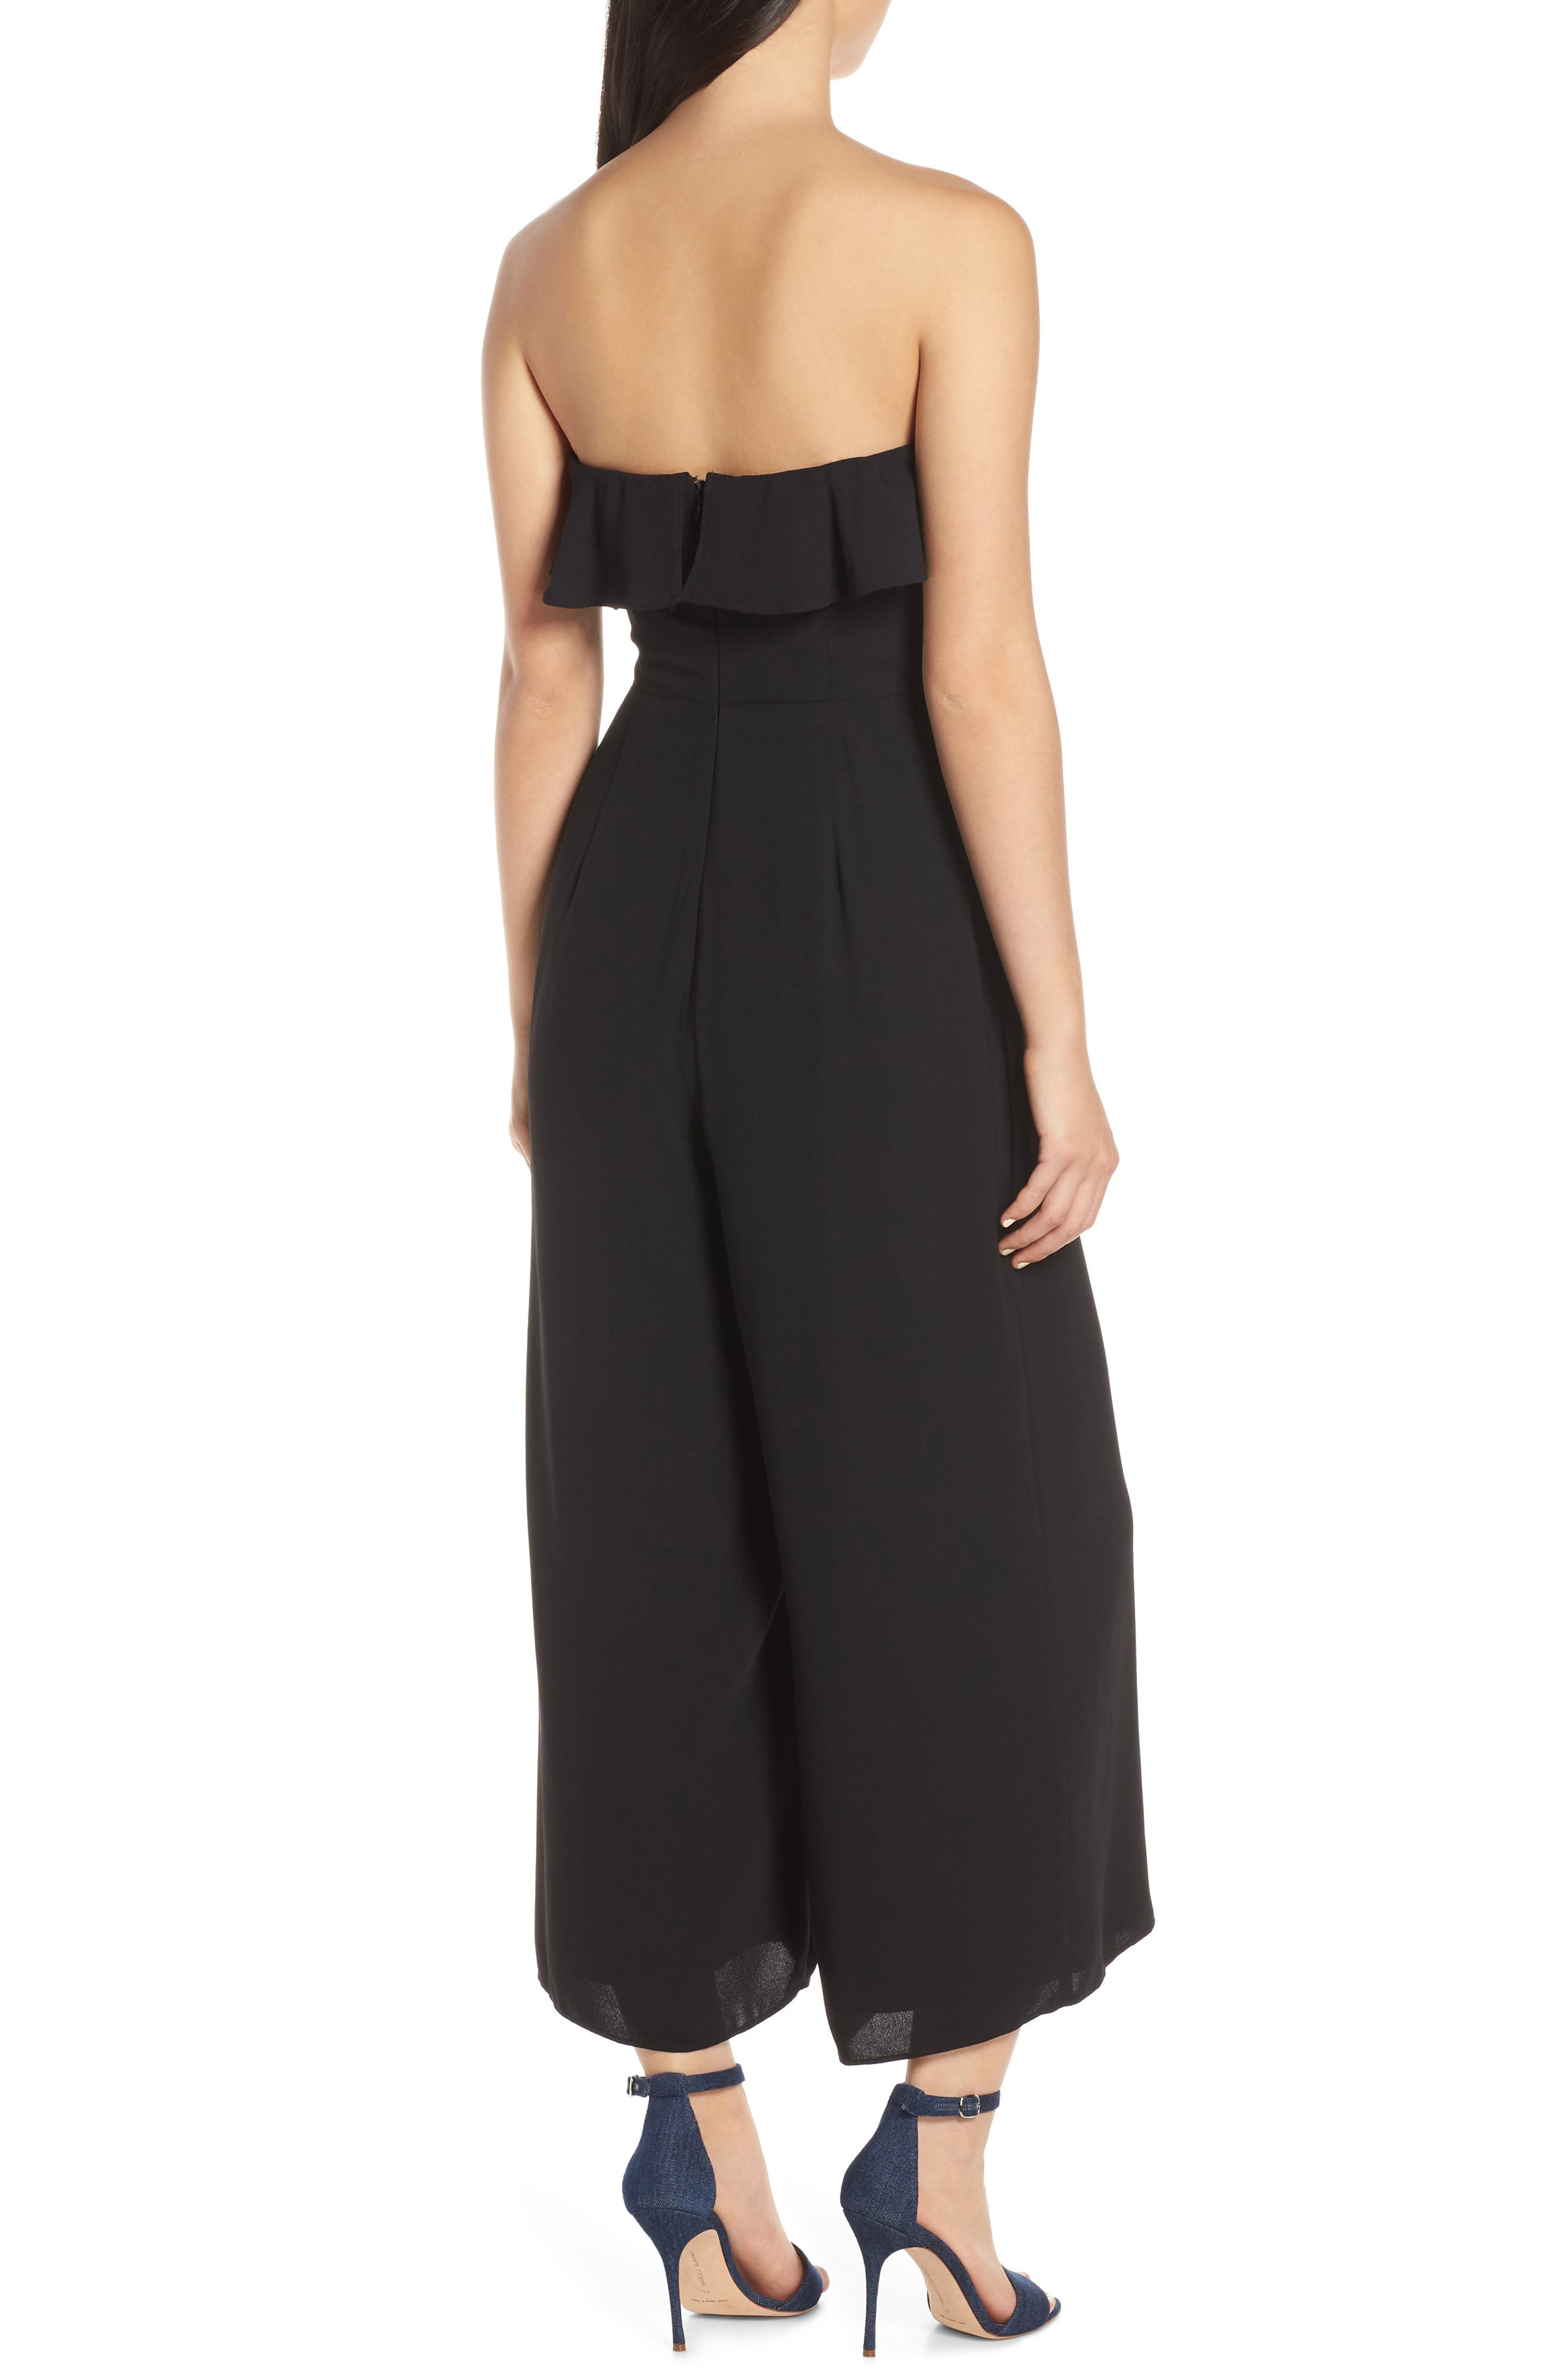 CHELSEA28,                             Strapless Ruffle Front Jumpsuit,                             Alternate thumbnail 2, color,                             BLACK